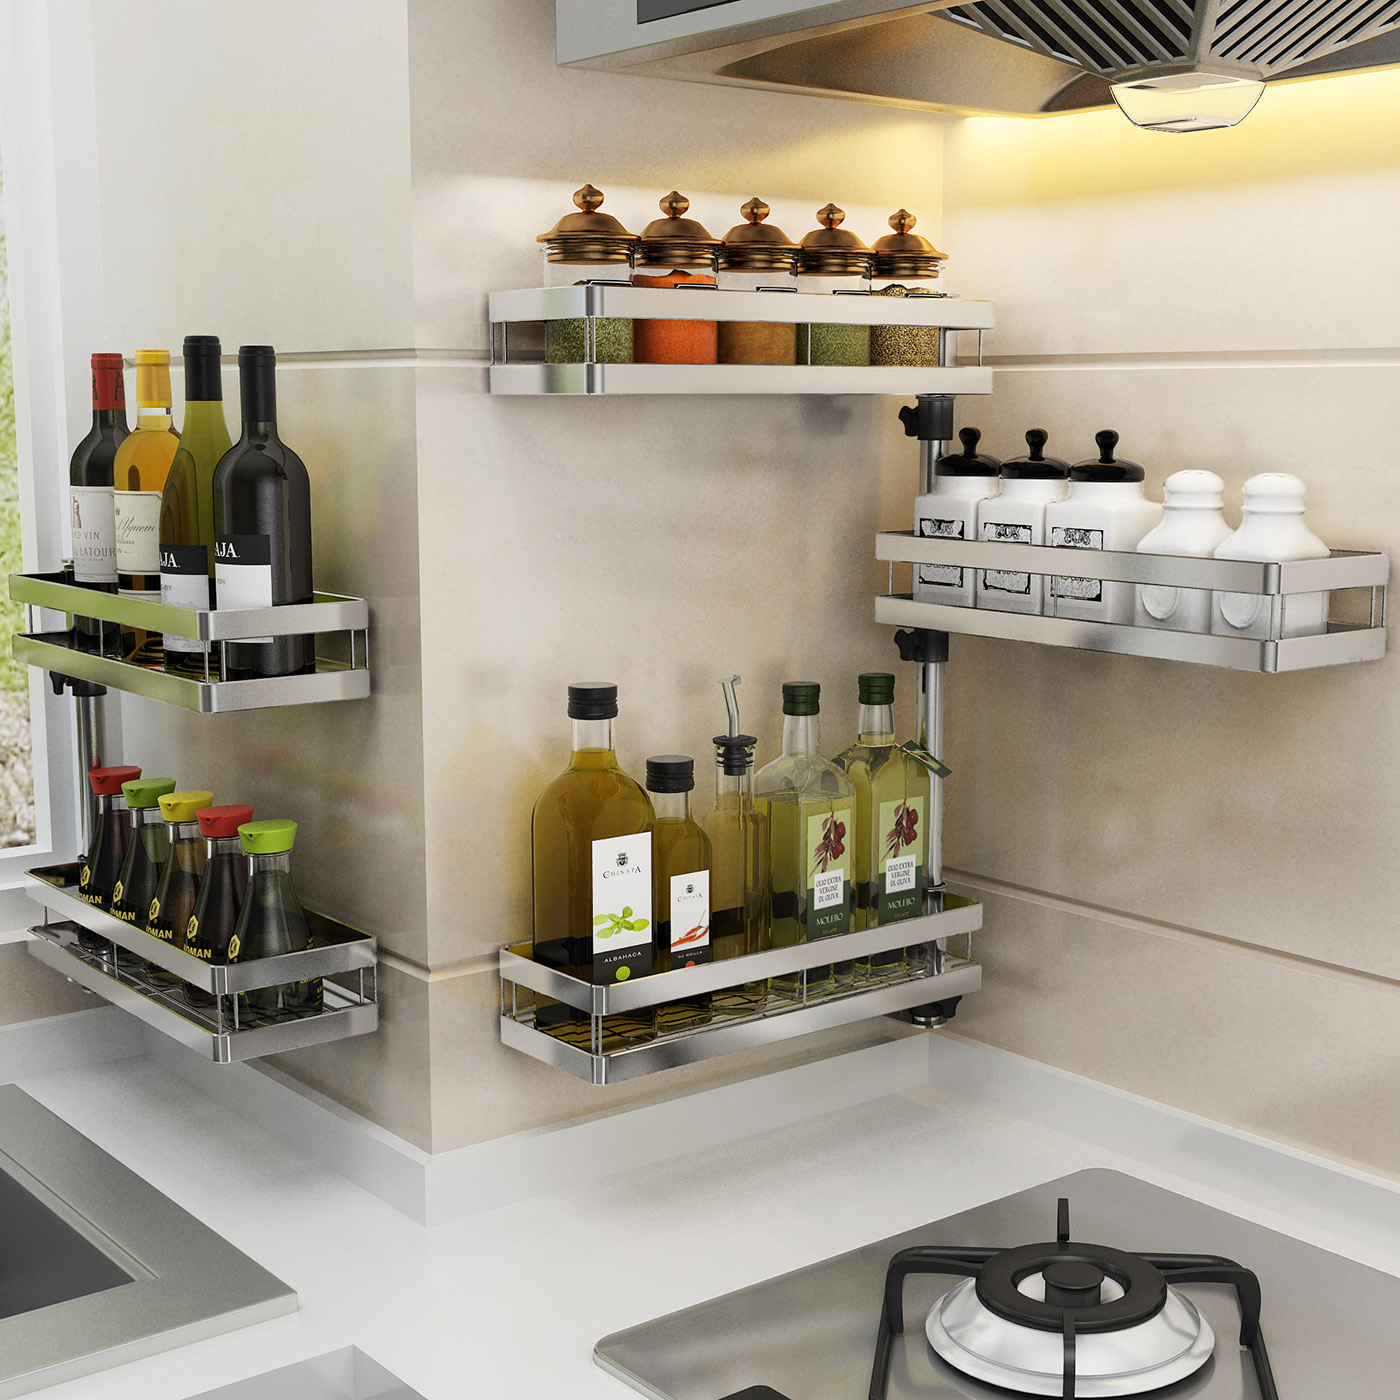 Punch Free Stainless Steel Kitchen Shelves Oil And Soy Sauce